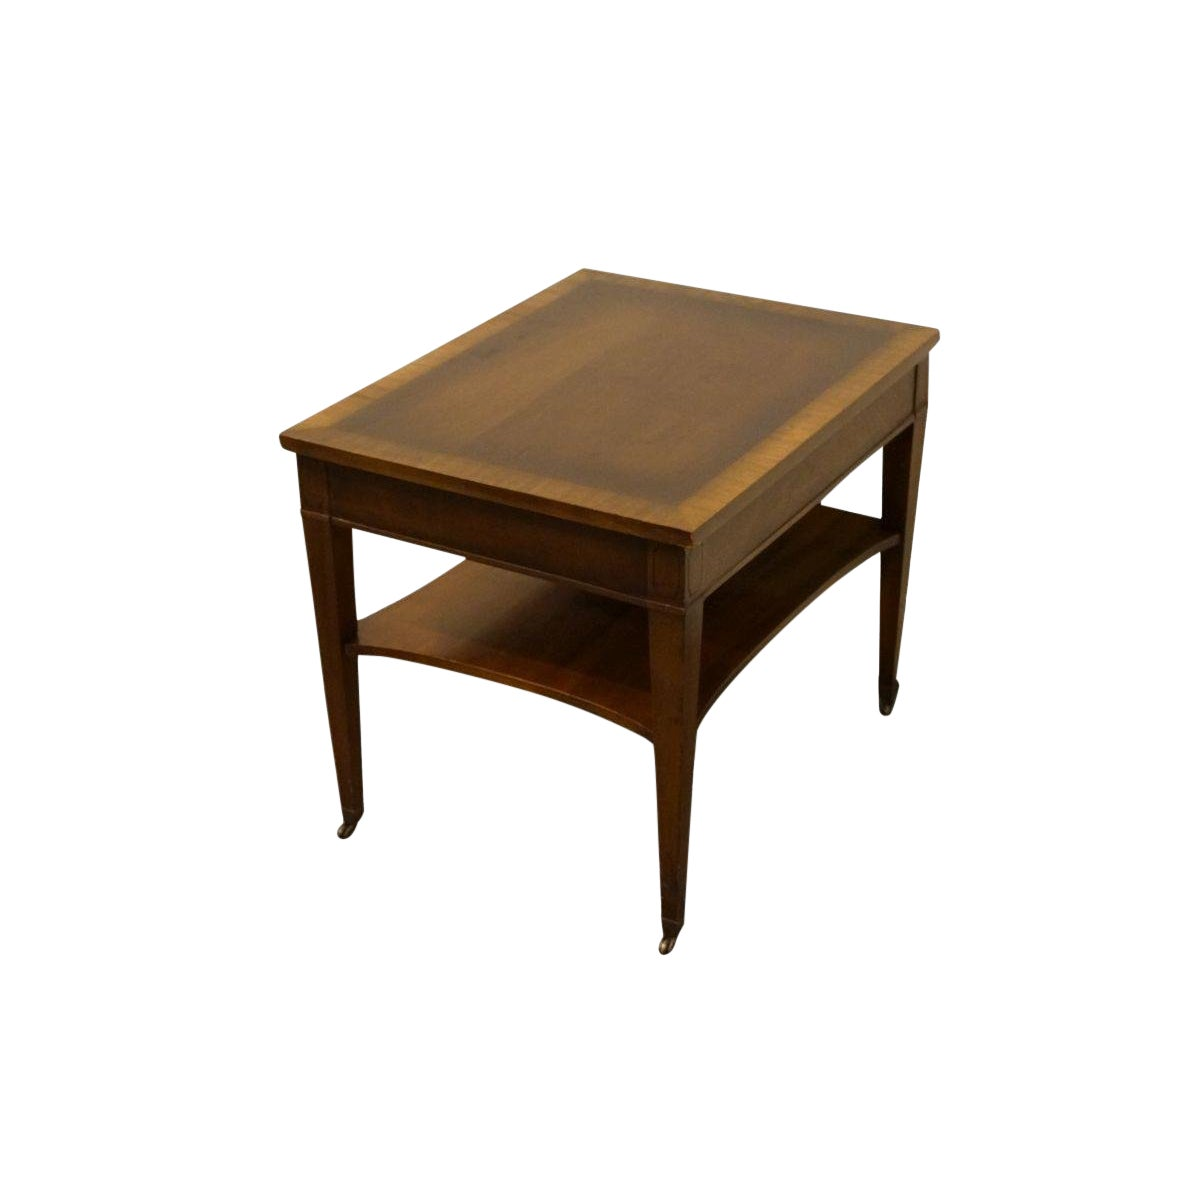 lane furniture banded mahogany end table chairish used tables bookshelf nightstand laura ashley dining lamp magazine farm style acme jersey city wide console steel handmade